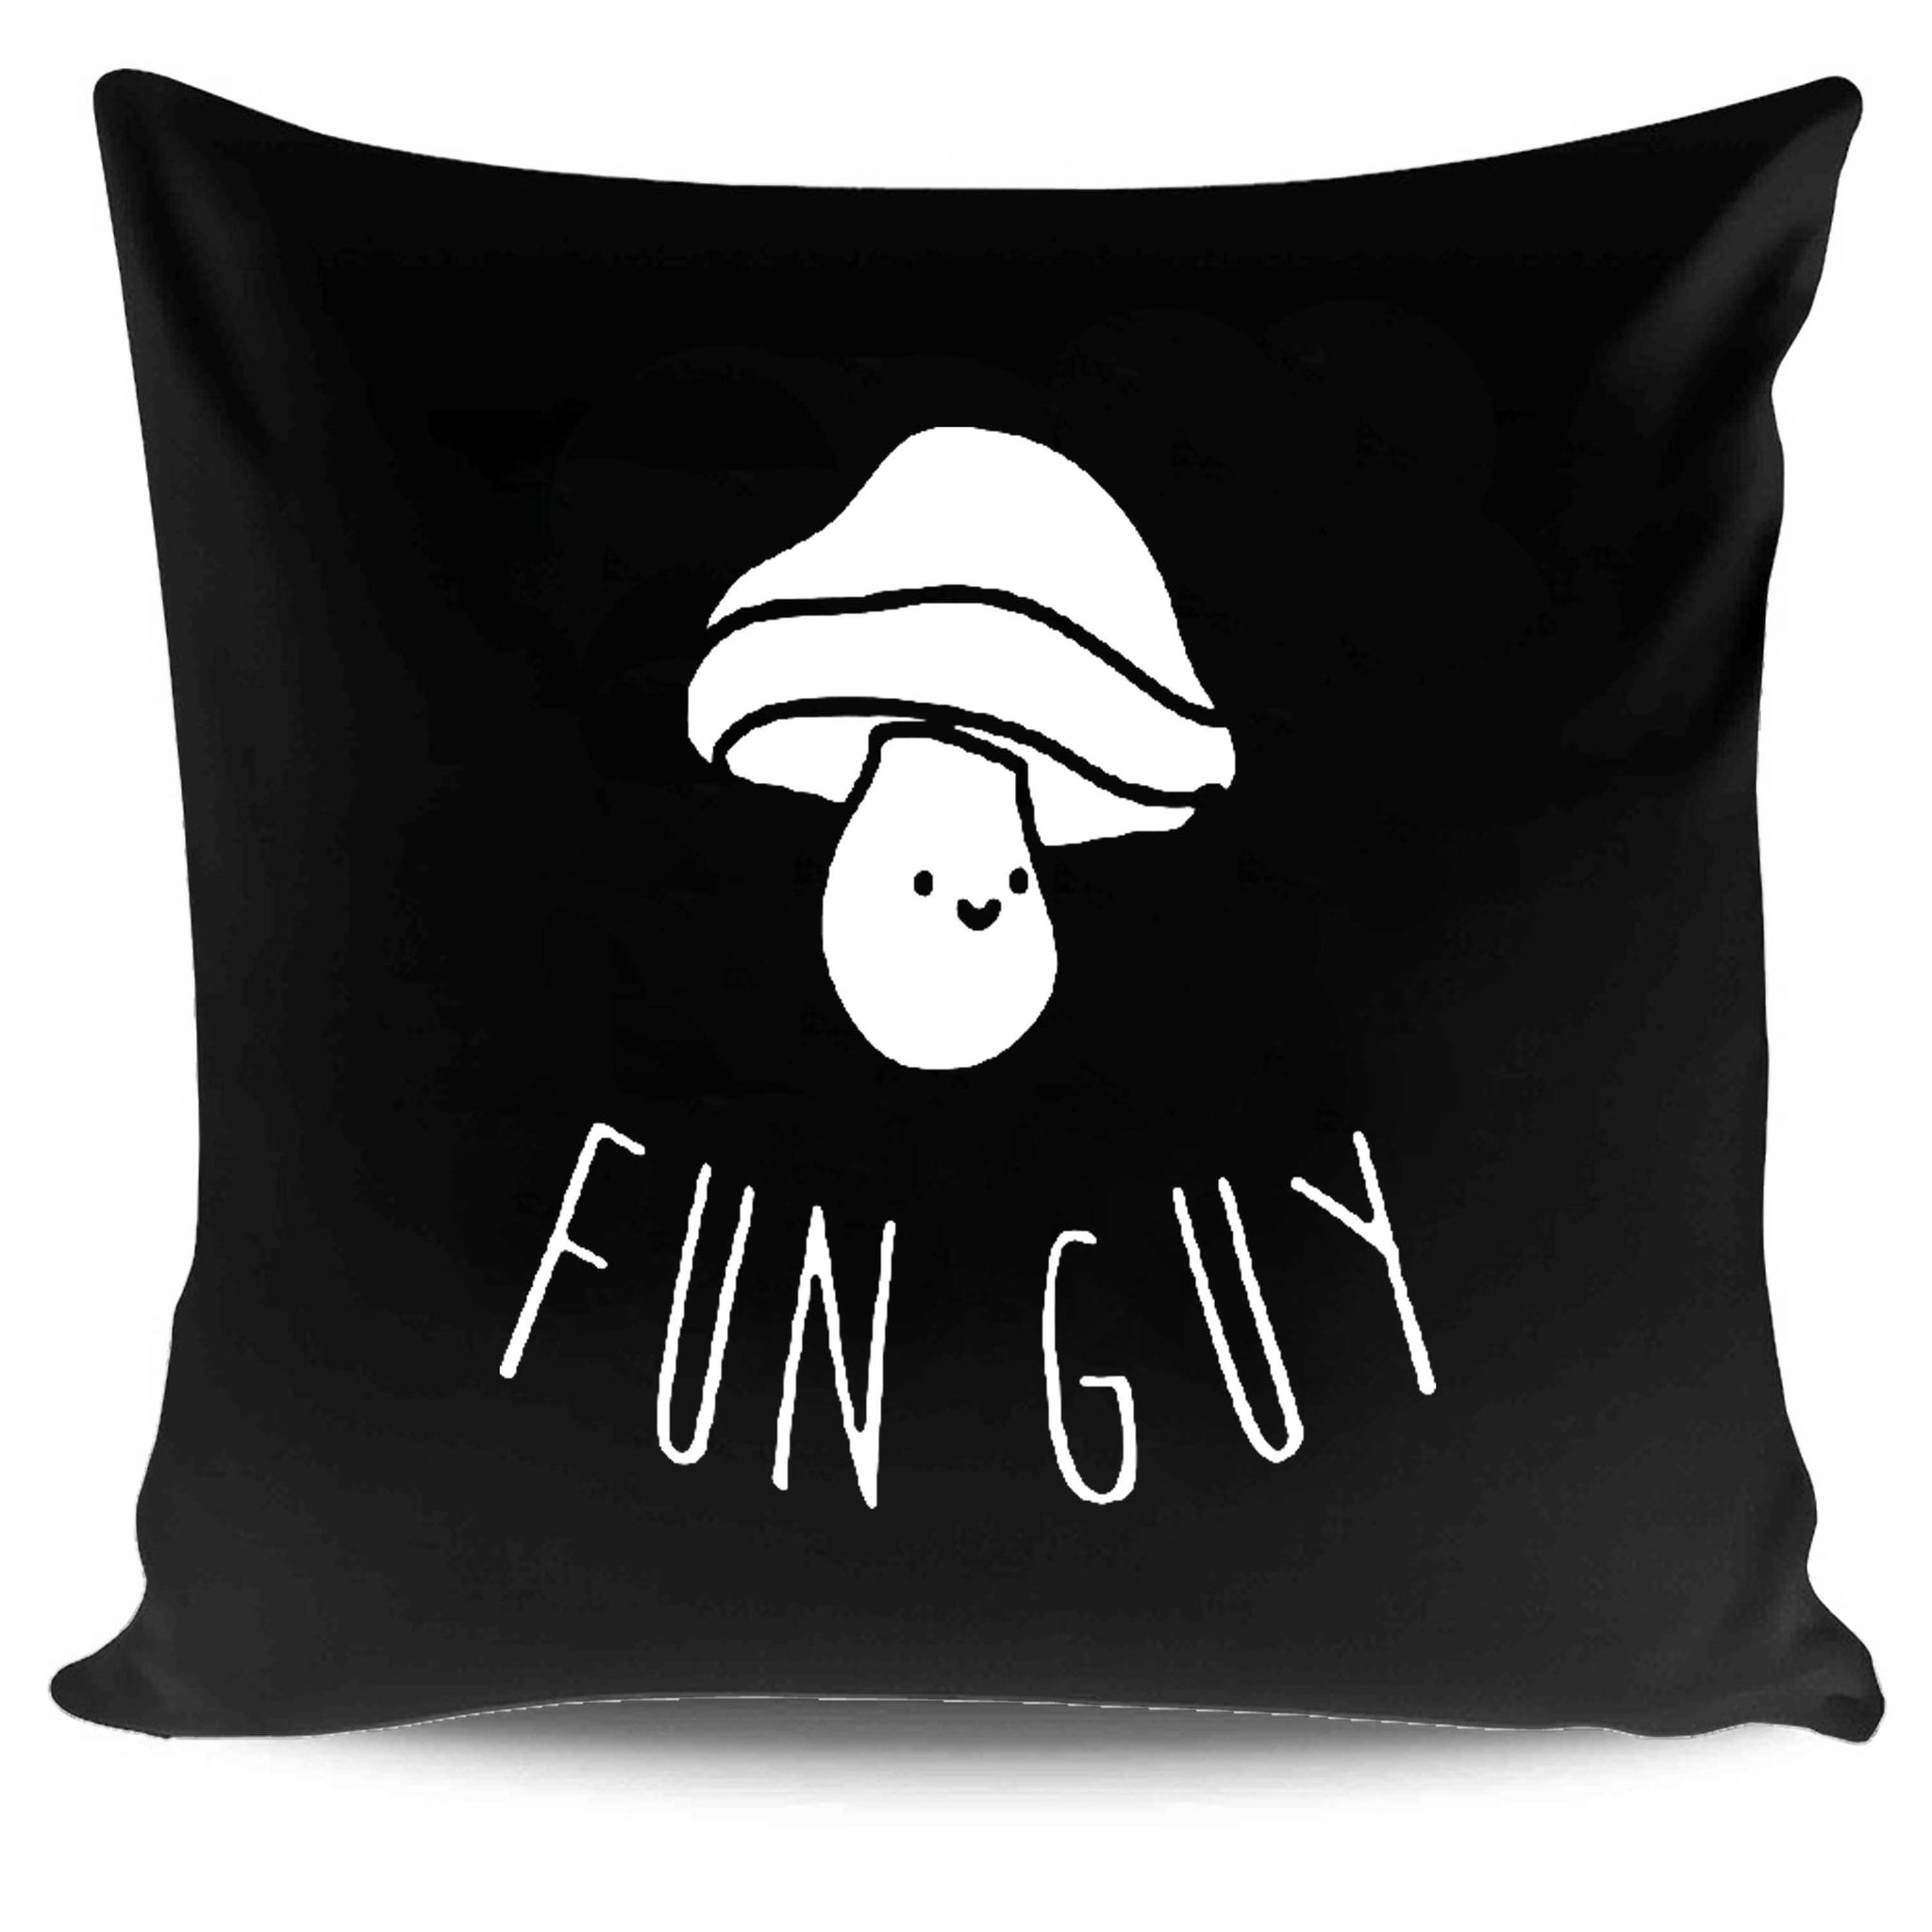 Funny Mushroom Fun Guy Pillow Case Cover